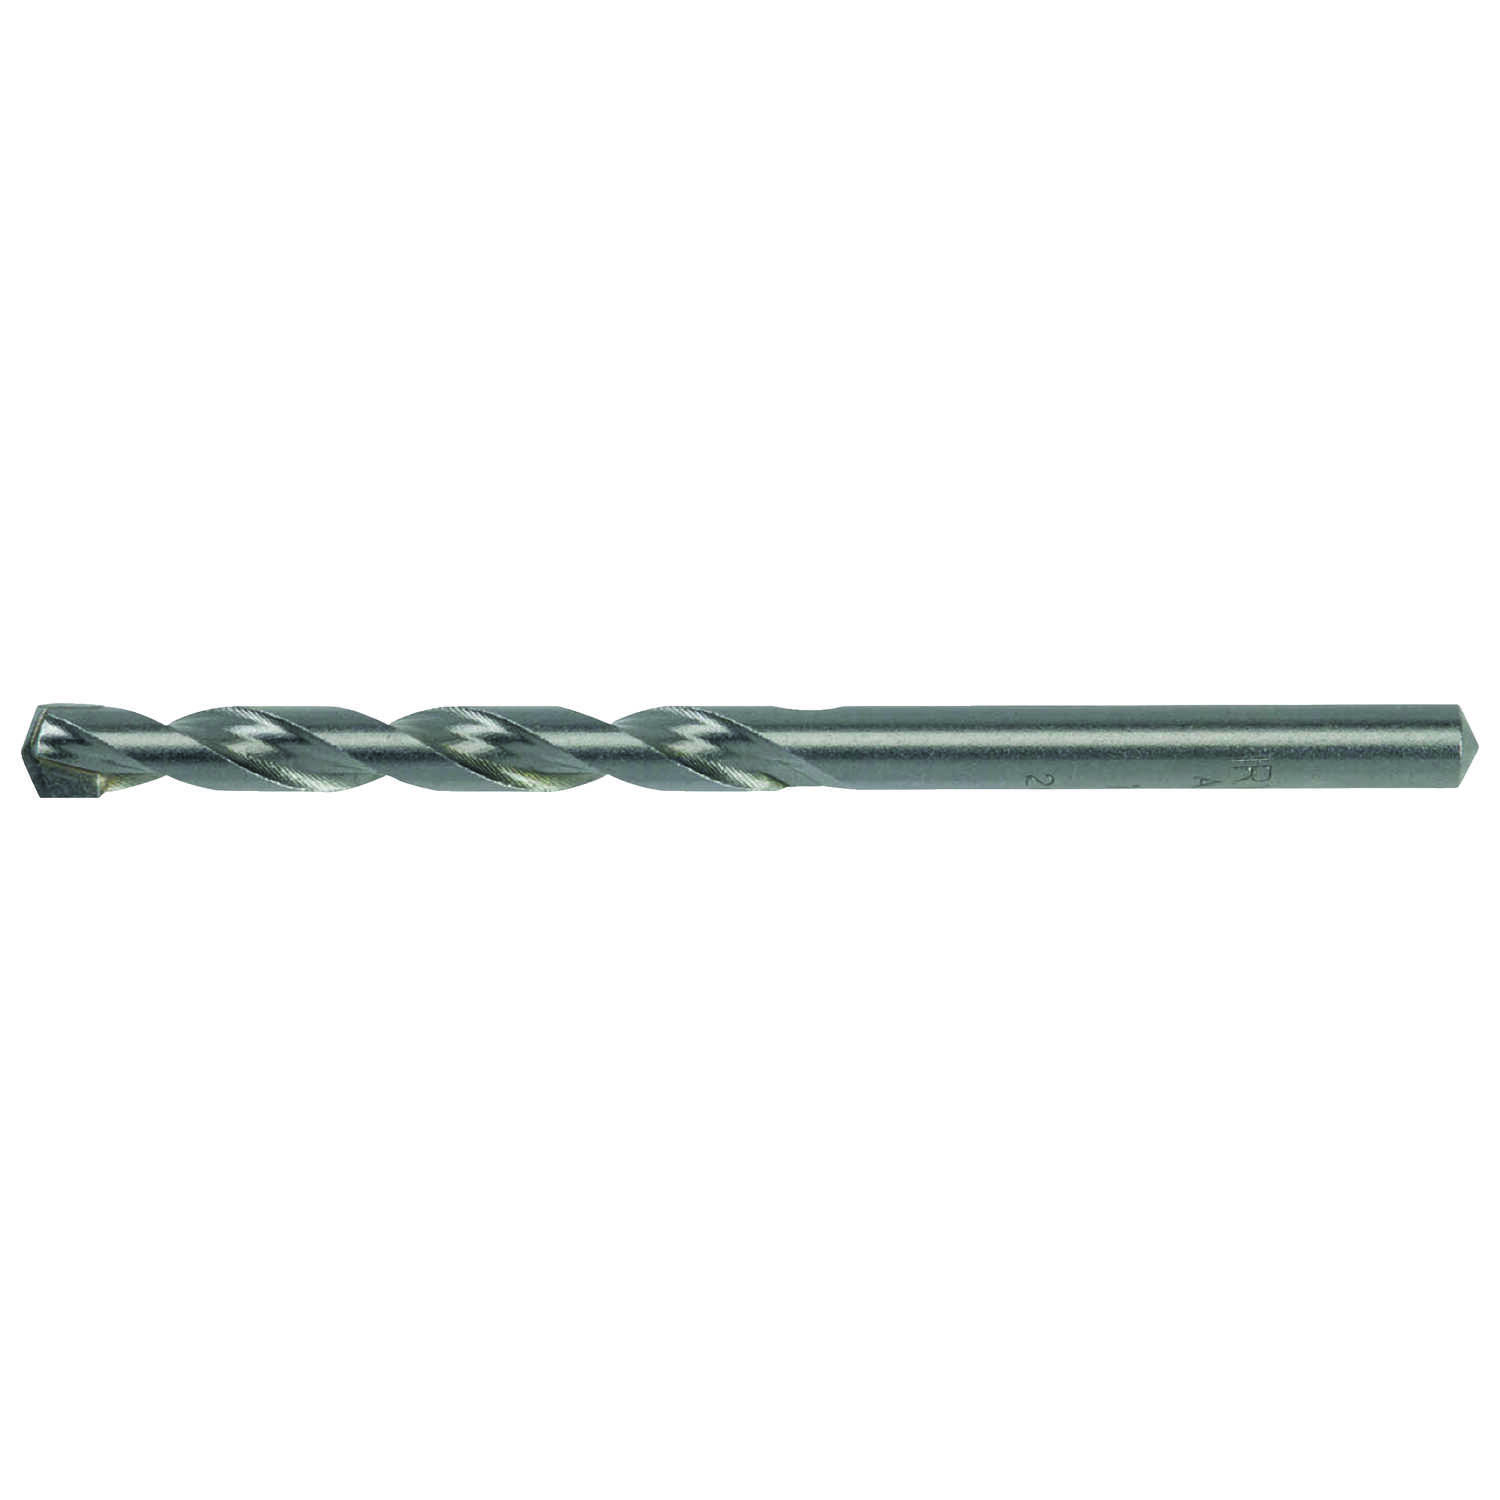 Irwin  Rotary Percussion  1/4 in. Dia. x 4 in. L High Speed Steel  Hammer Drill Bit  Straight Shank